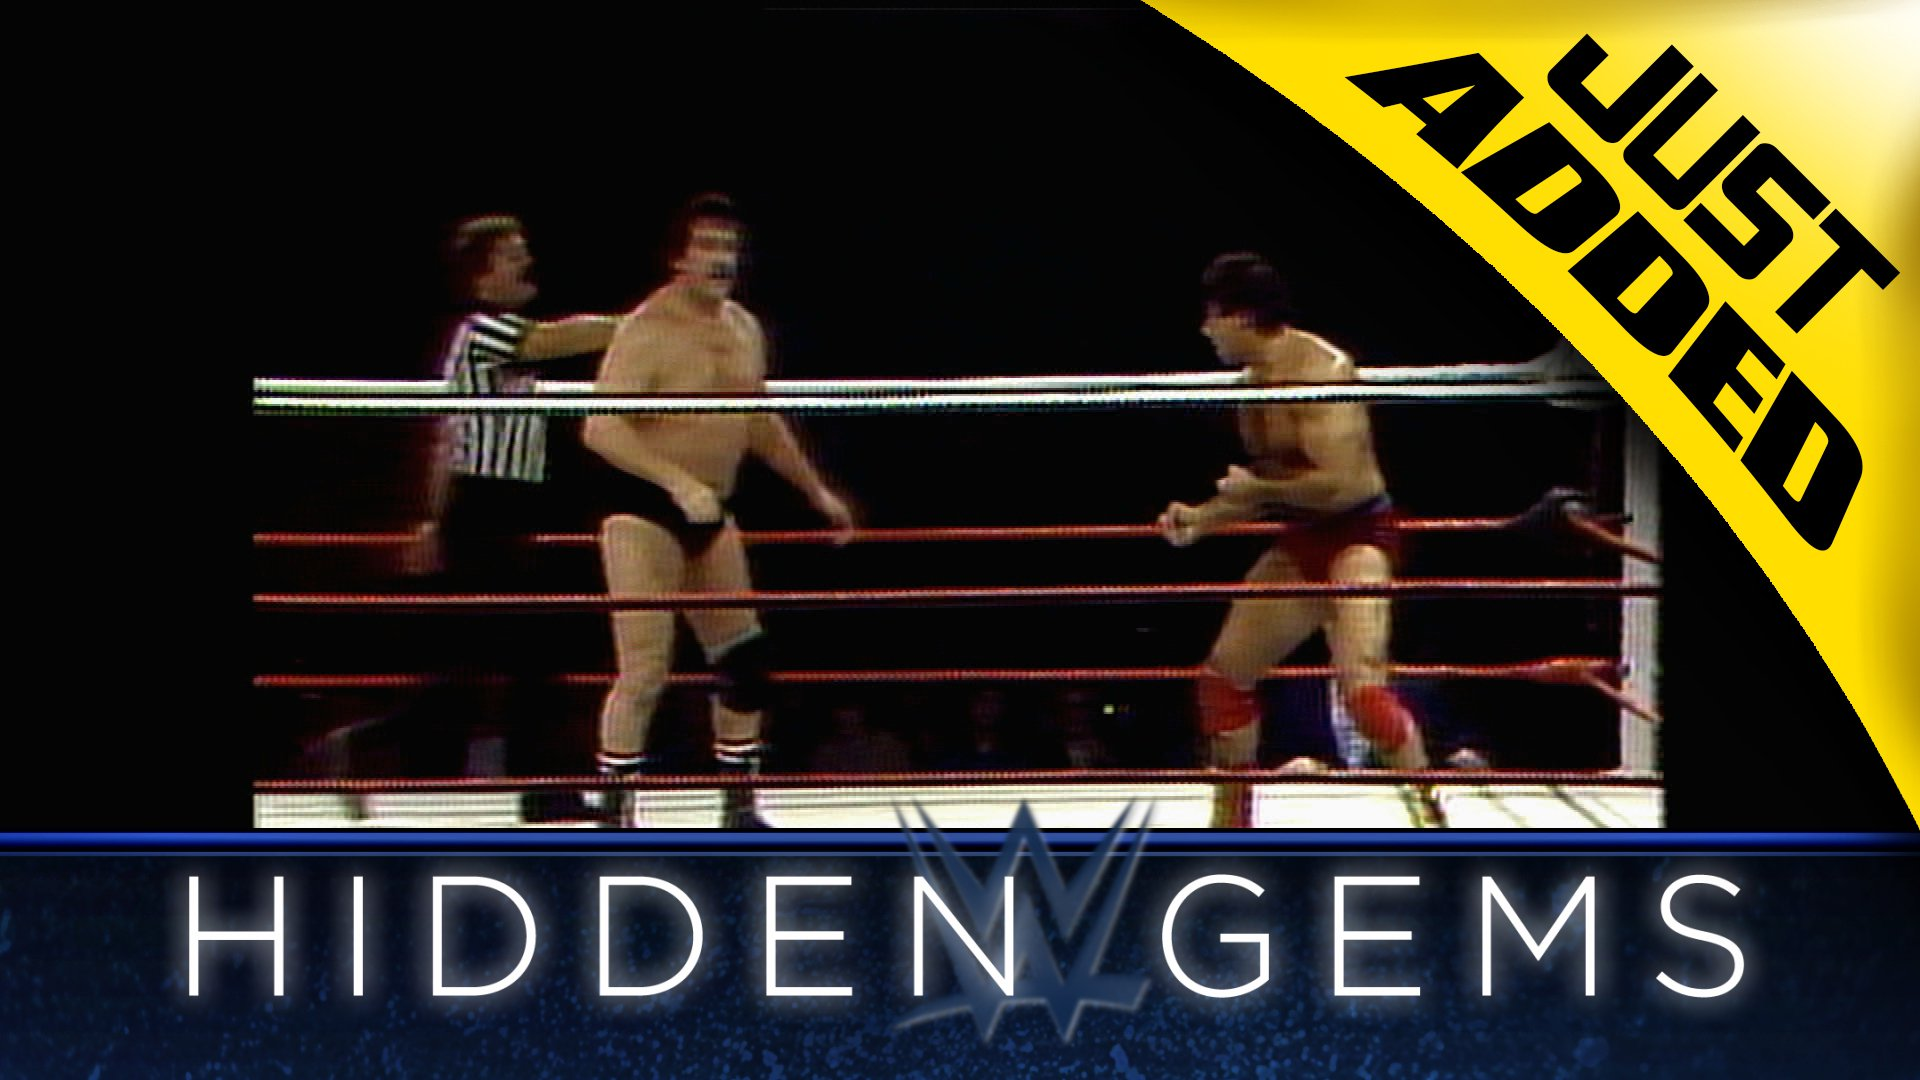 Rick Martel clashes with Billy Robinson in rare WWE Hidden Gem from 1982 (WWE Network Exclusive)